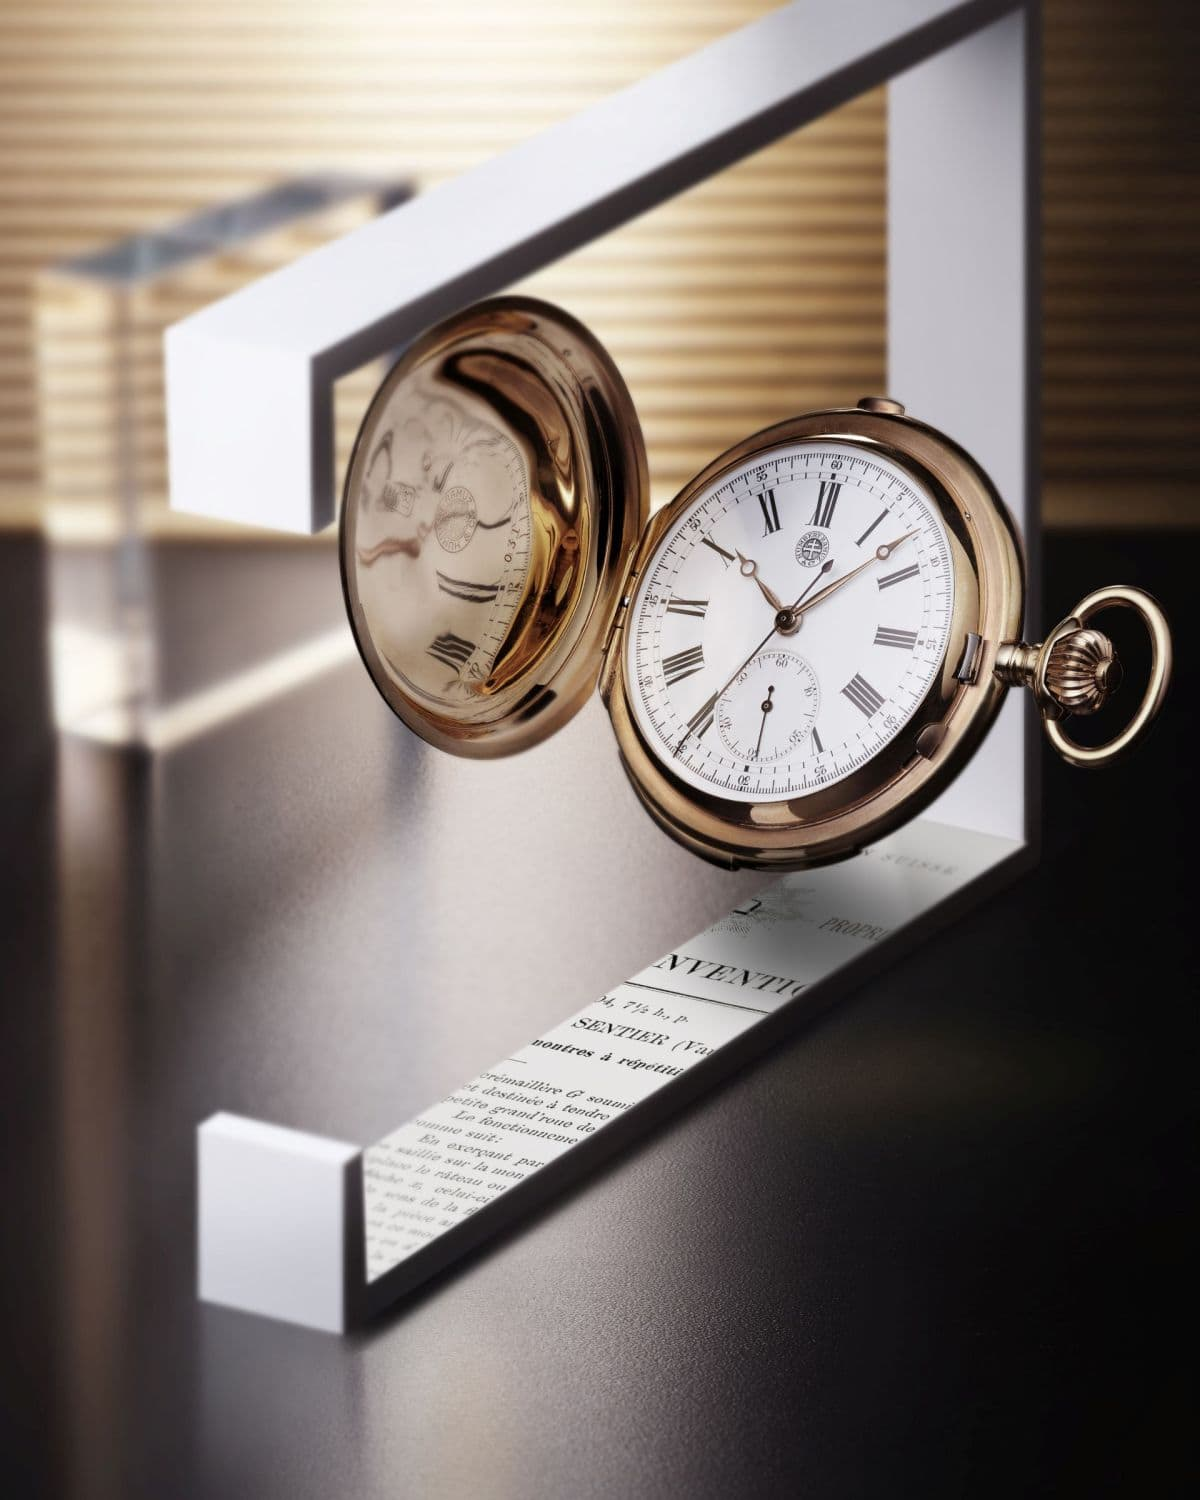 Jaeger-LeCoultre Celebrates Its Proud Heritage in the Manufacturing of Chiming Watches